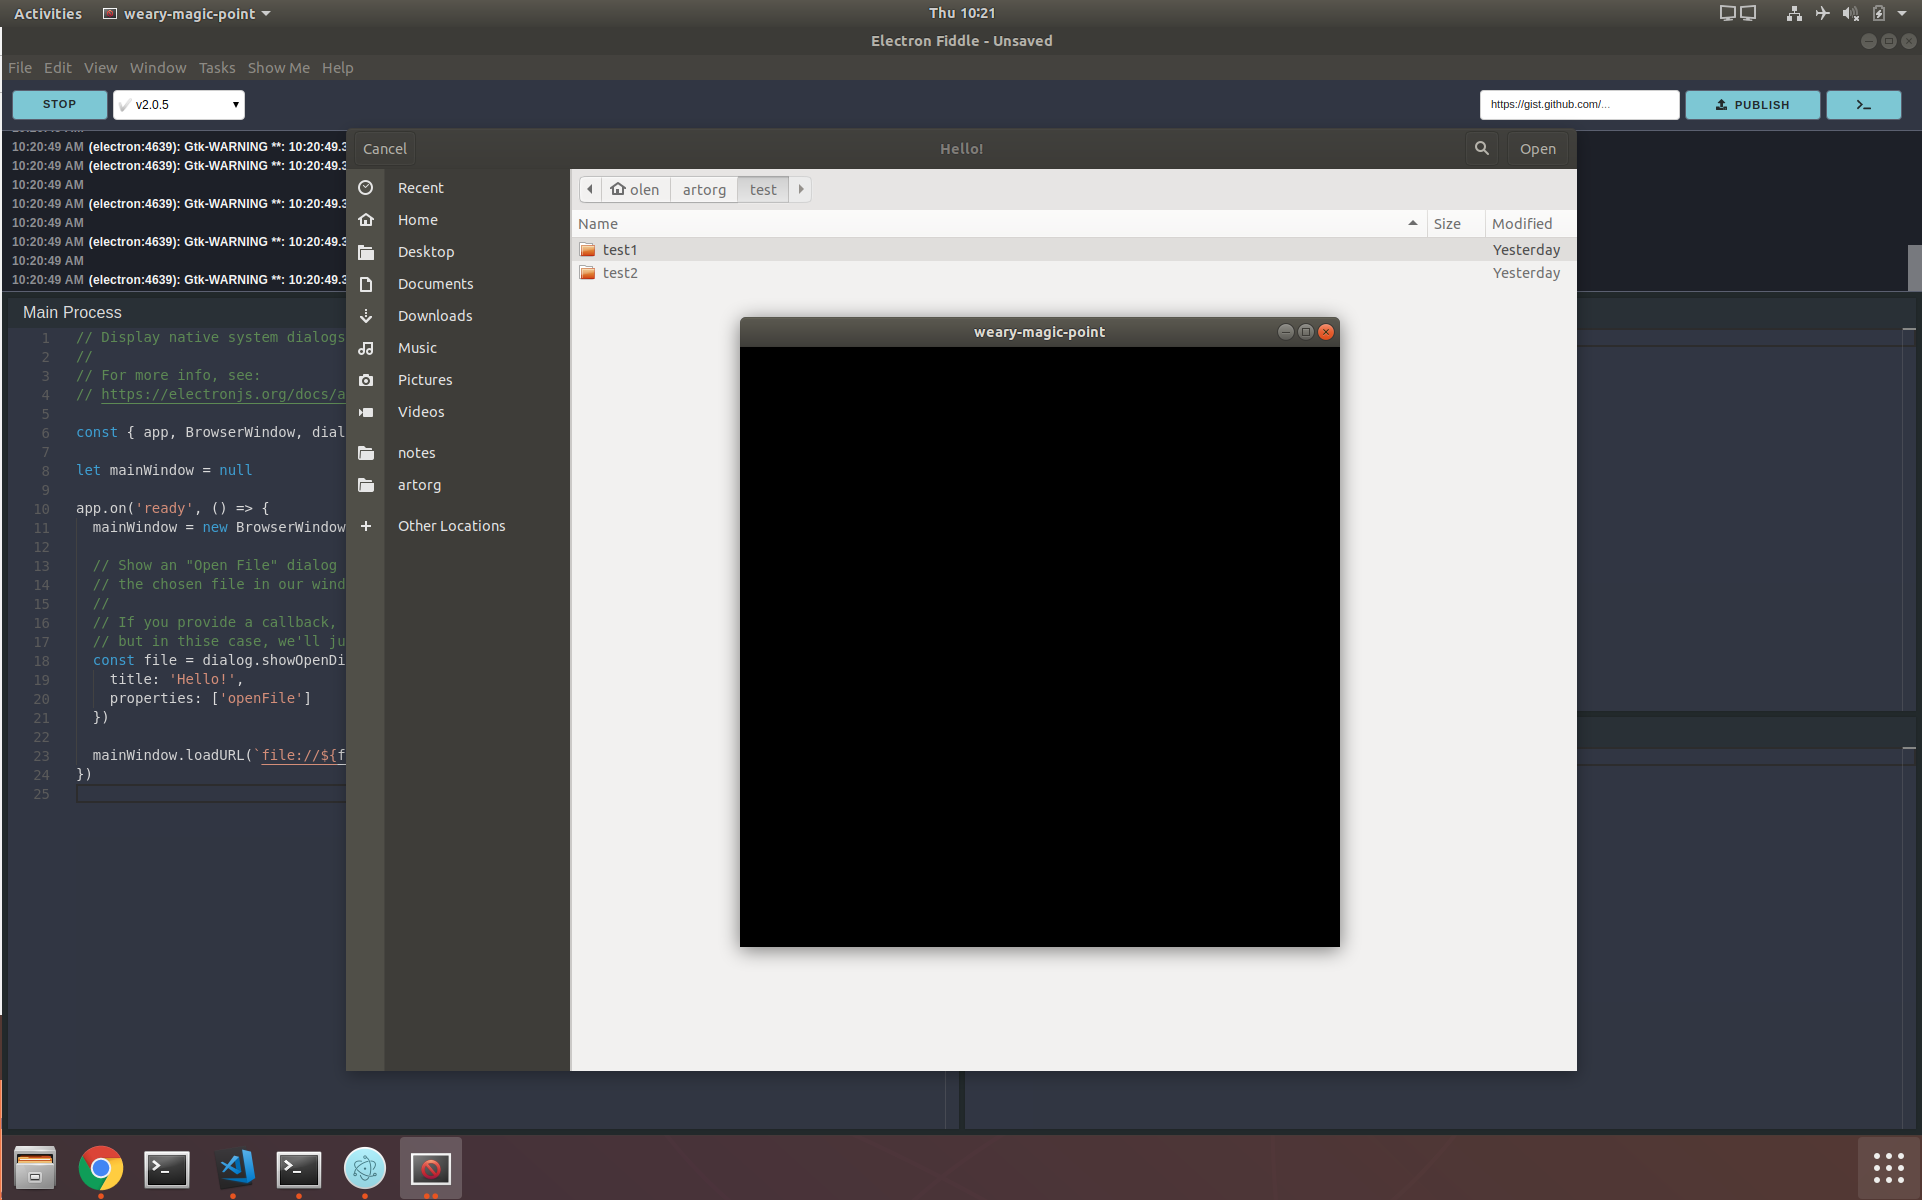 Linux: dialogs are looking broken in the snap package